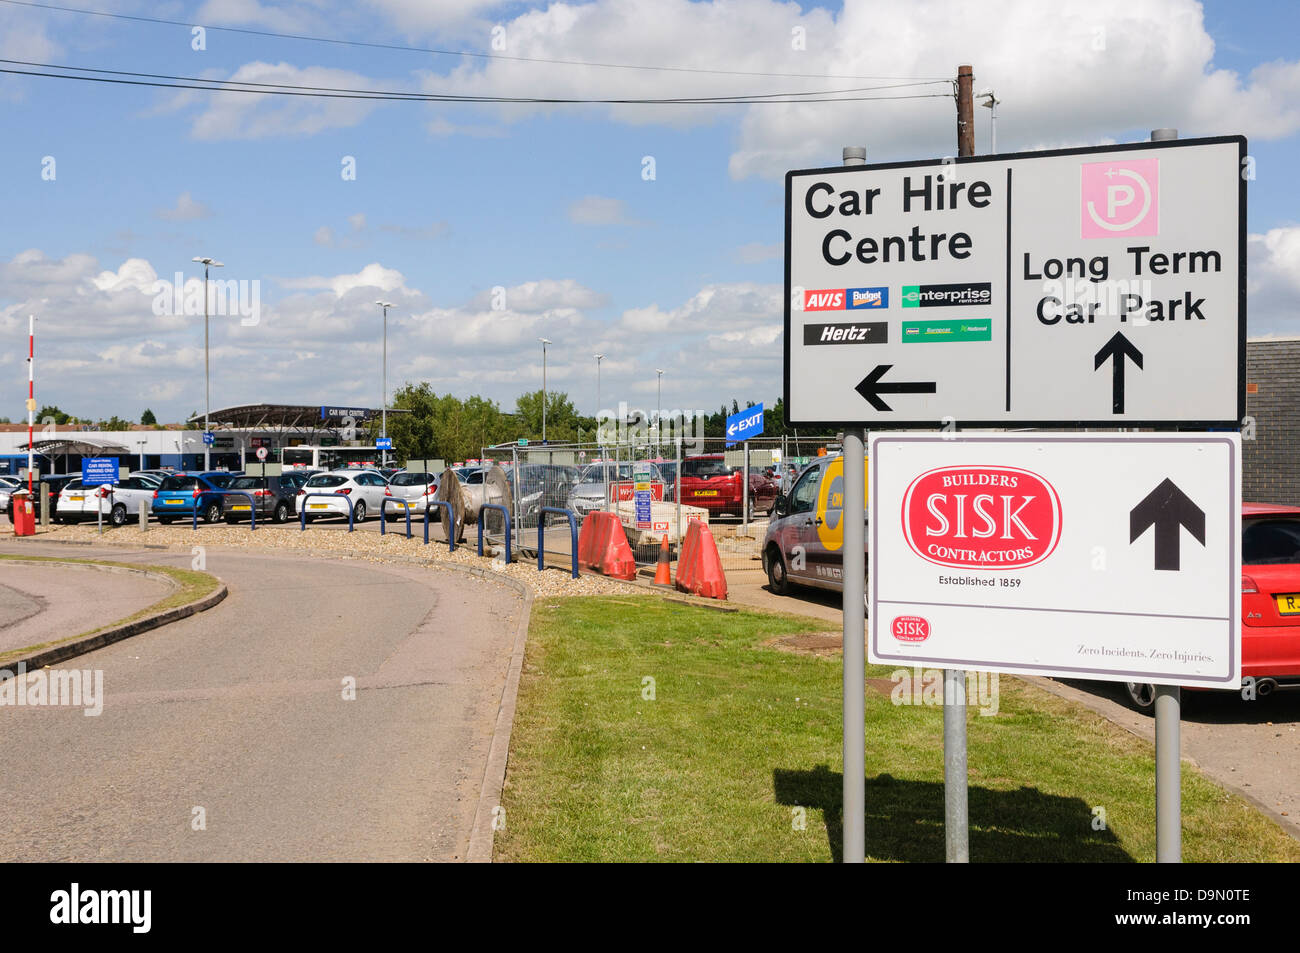 Hire Car Airport Stock Photos Hire Car Airport Stock Images Alamy